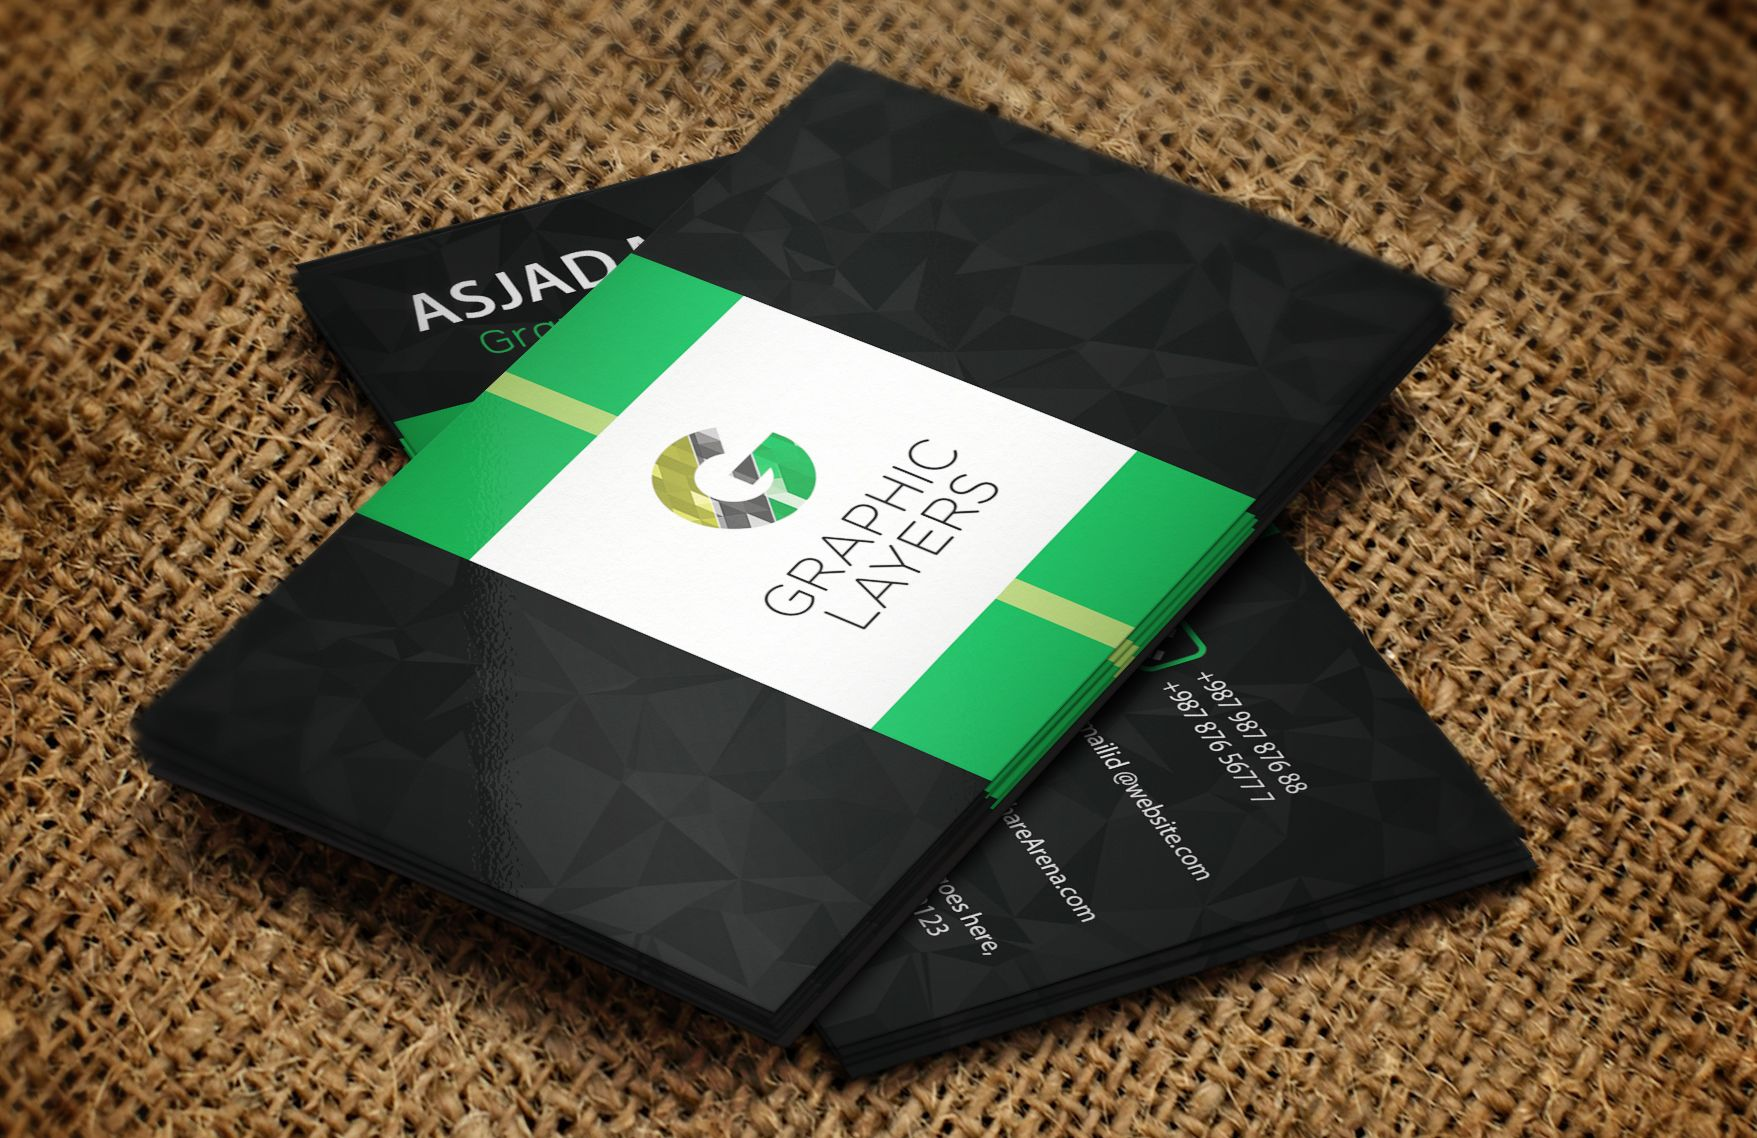 Must have Awesome Premium Business Card PSD Template https://gumroad ...